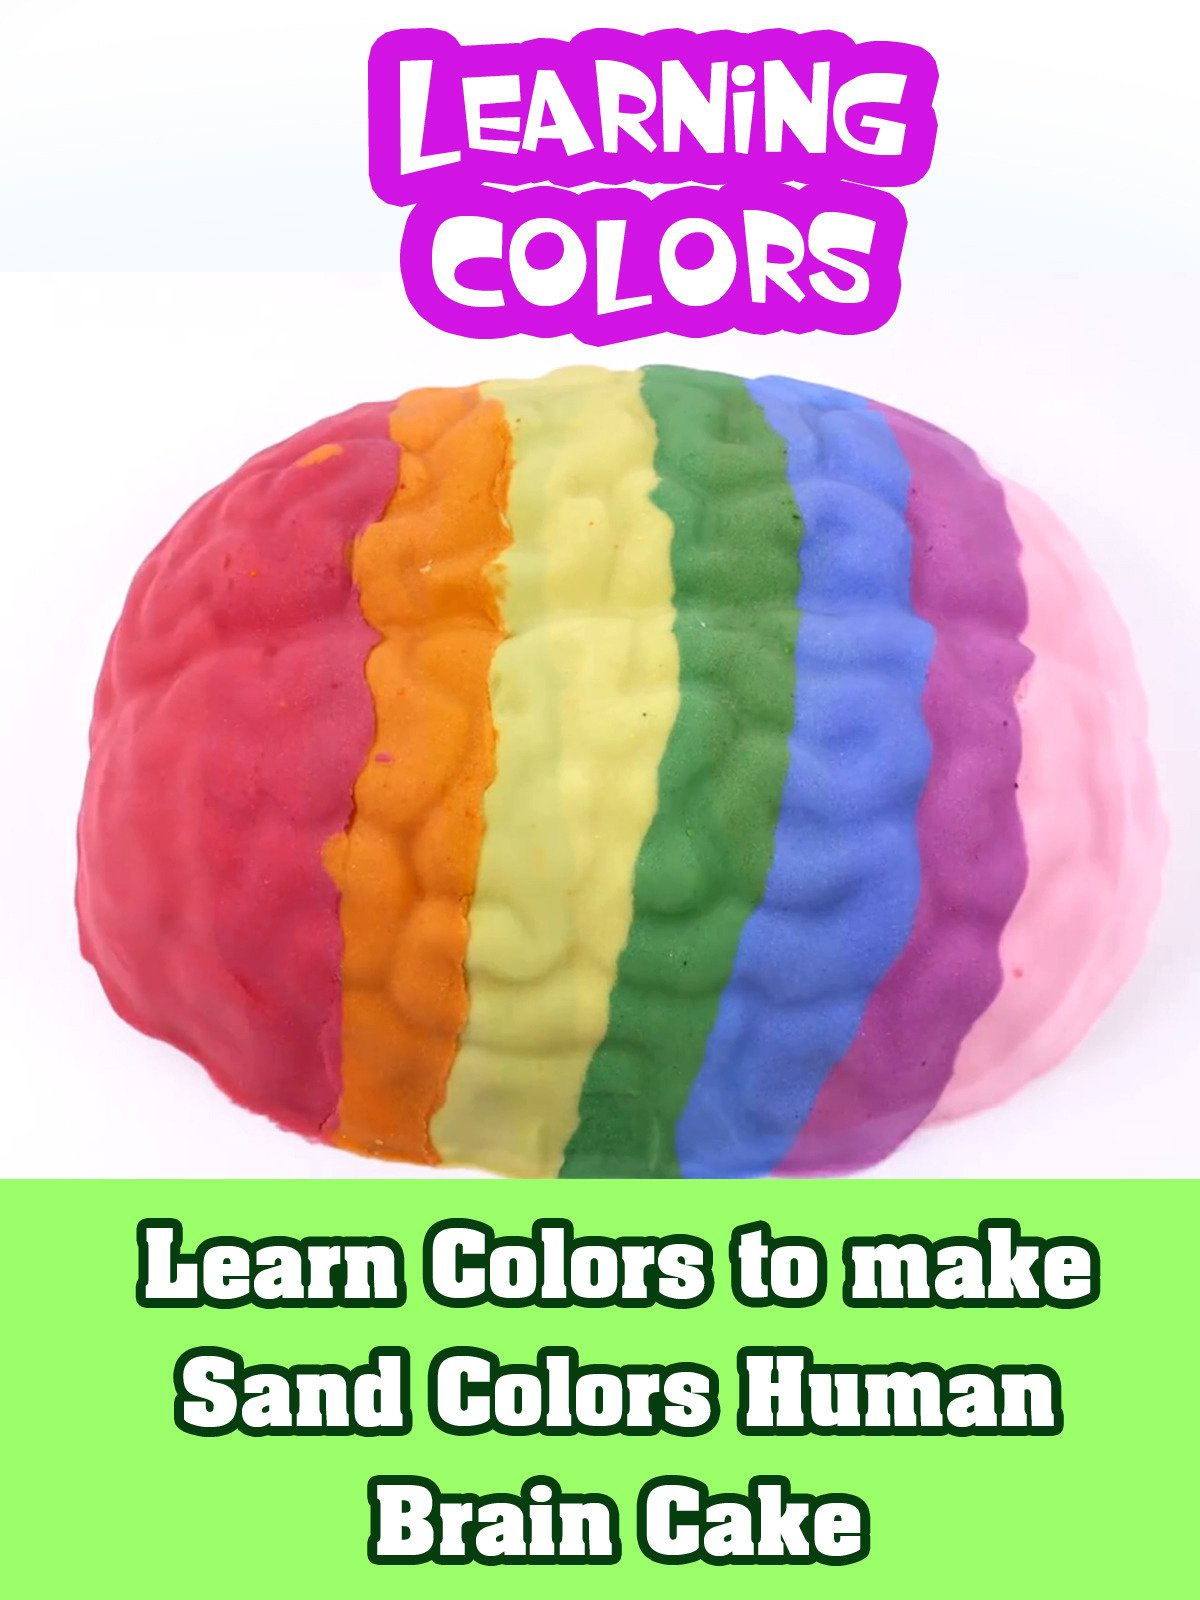 Learn Colors to make Sand Colors Human Brain Cake